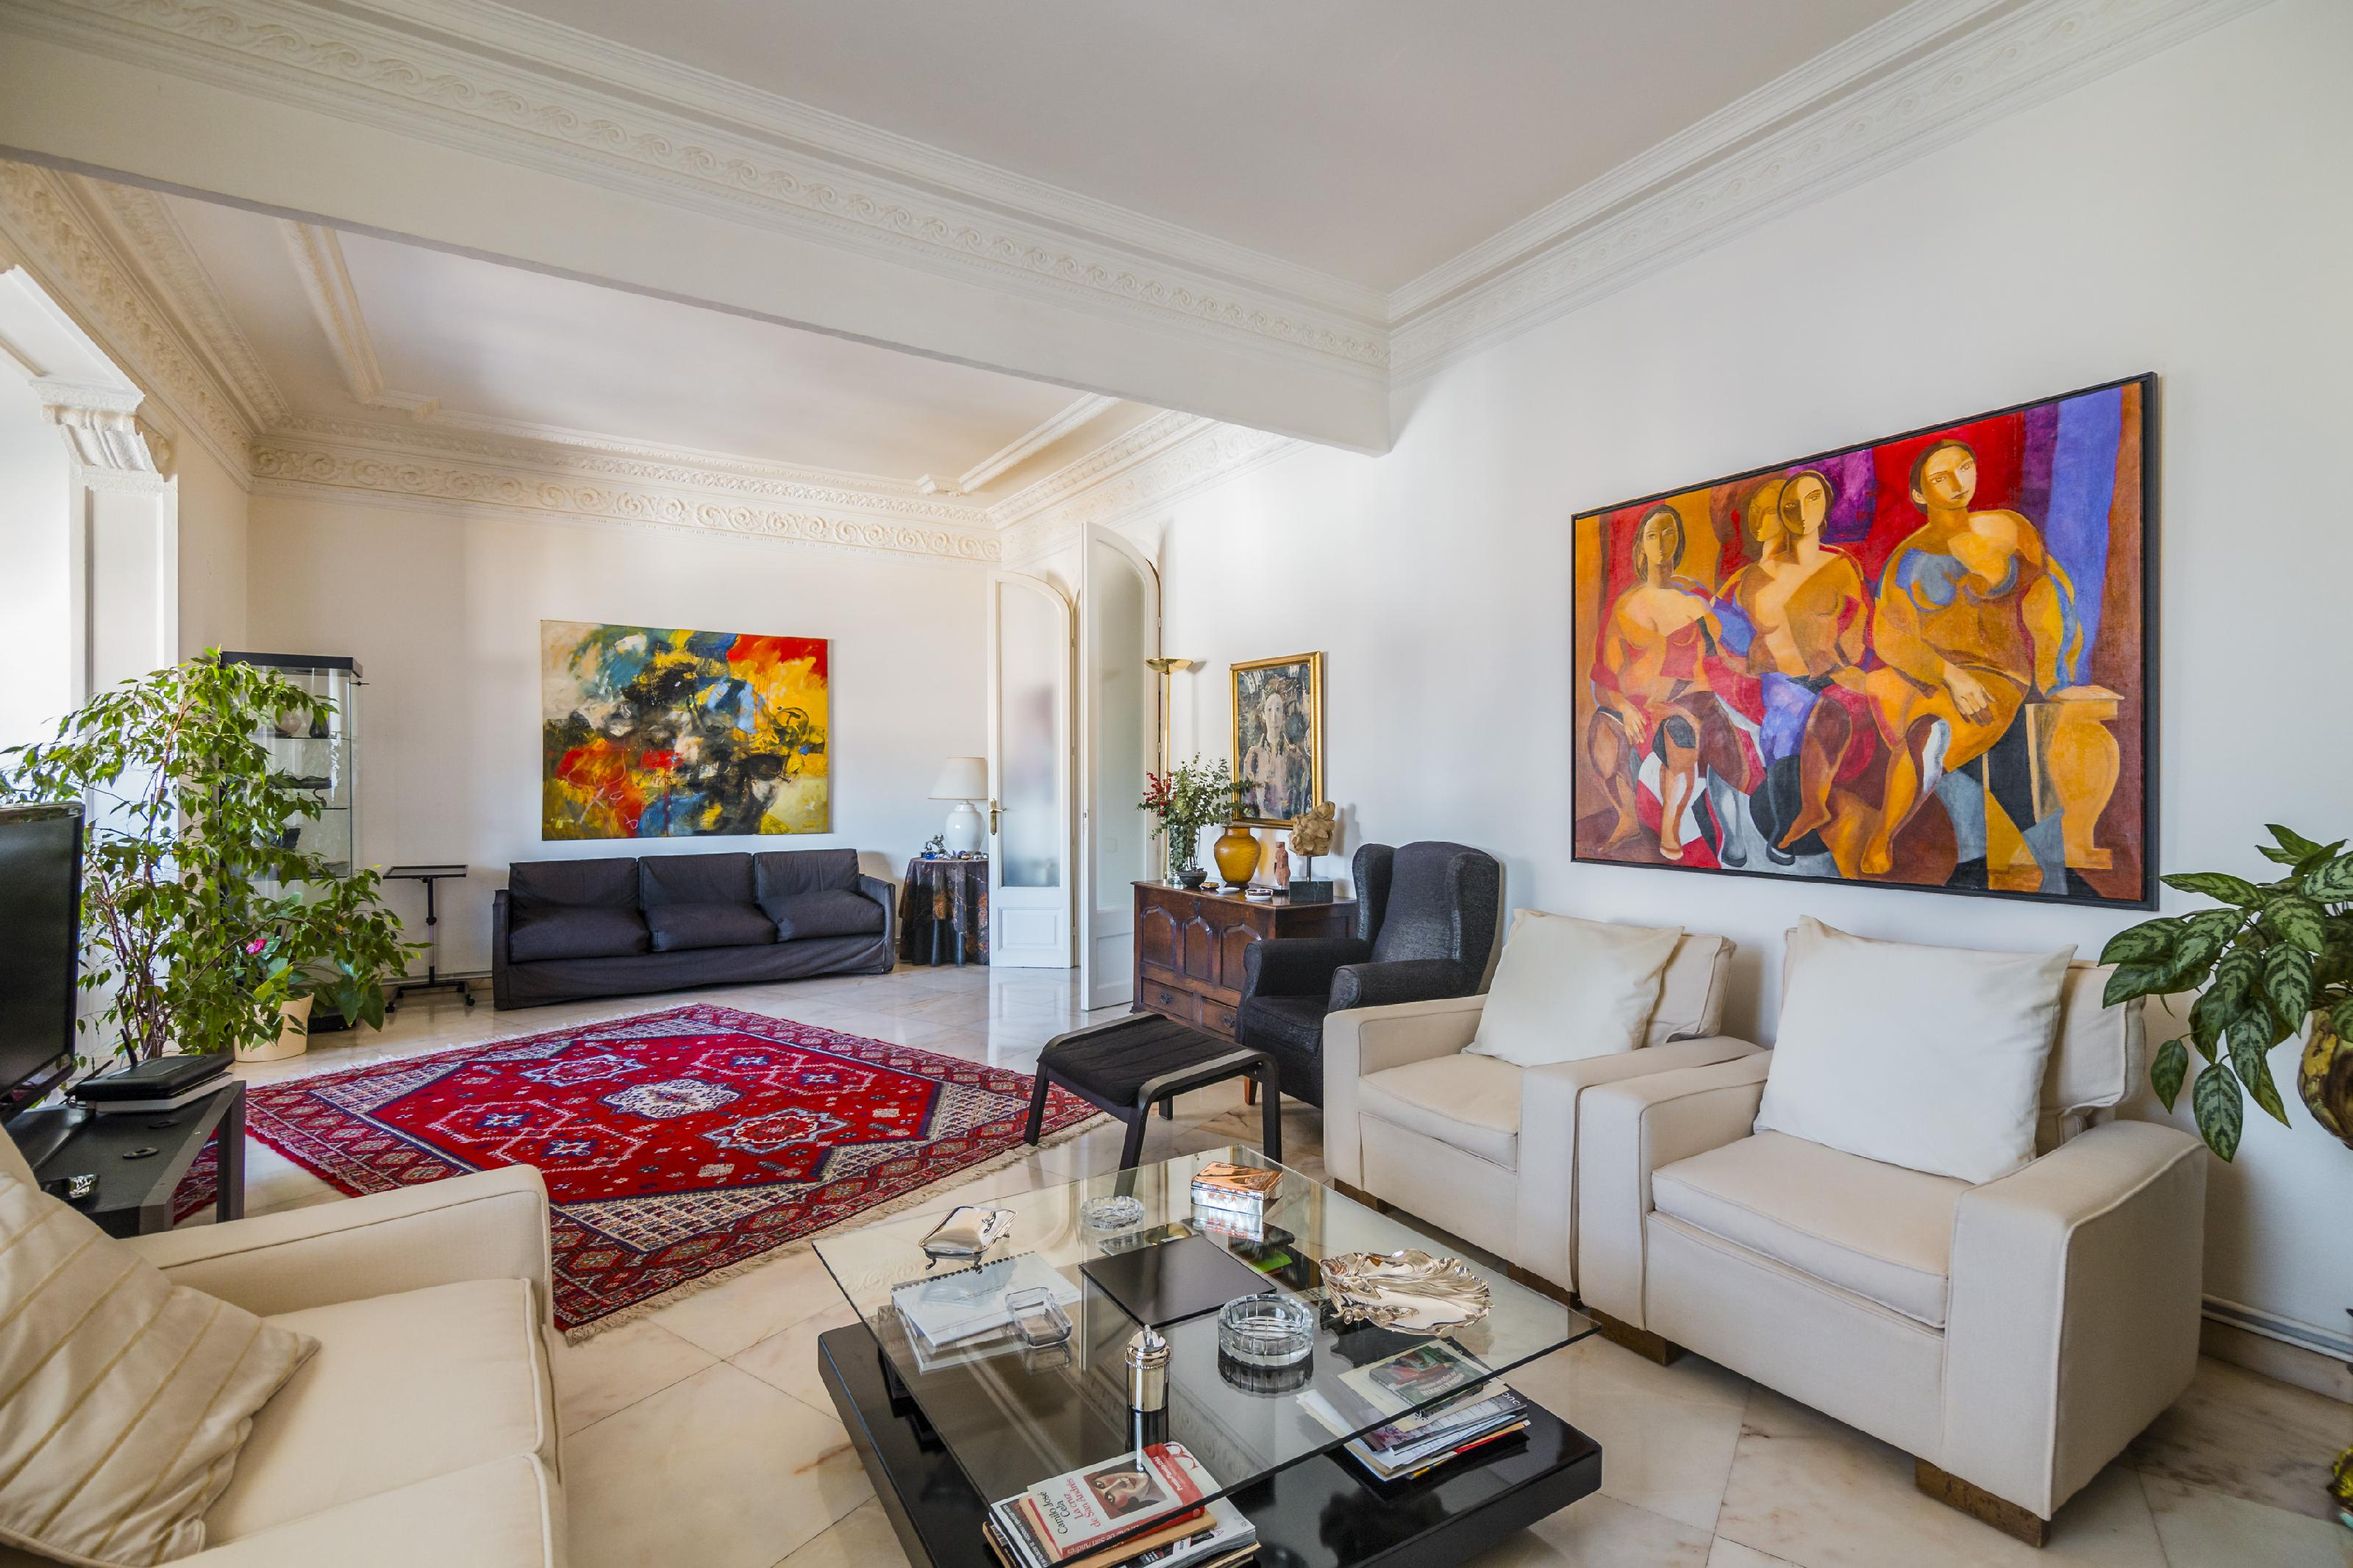 218503 Penthouse for sale in Sarrià-Sant Gervasi, Sant Gervasi-Galvany 7